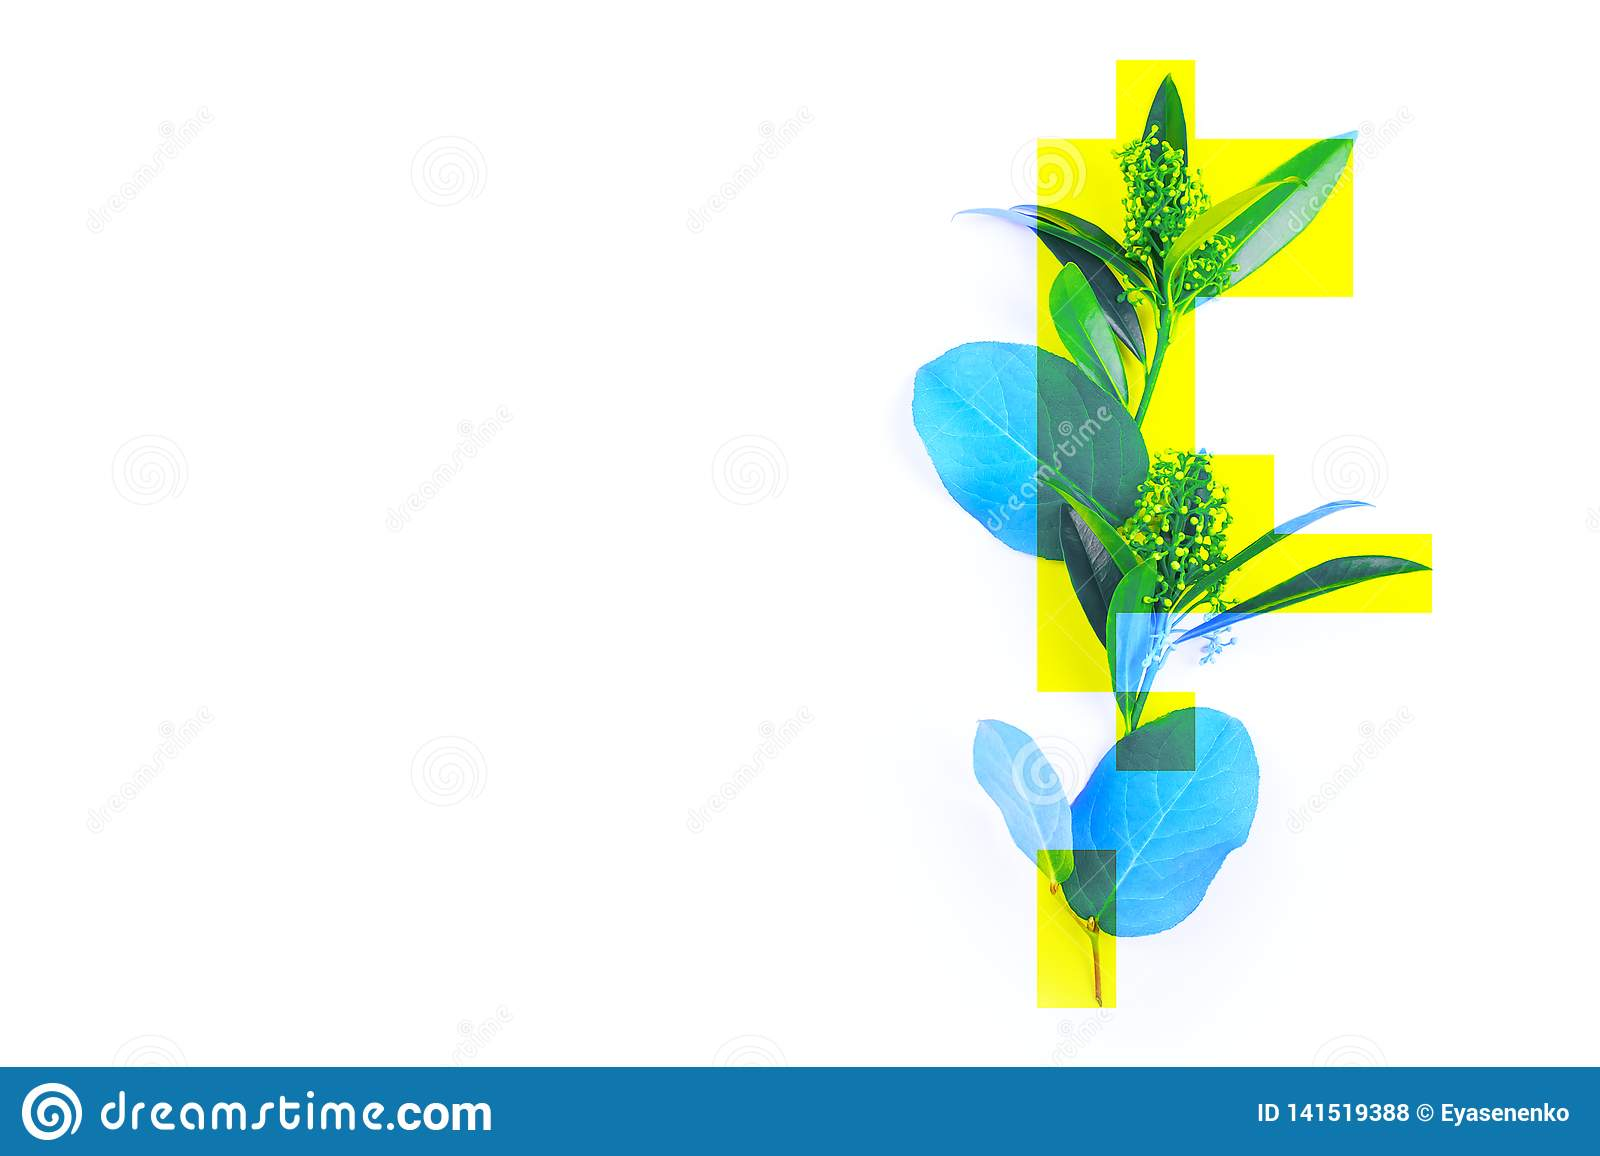 Creative photo of a plant, green leaves dyed blue with yellow rectangles, abstraction, not a standard image.